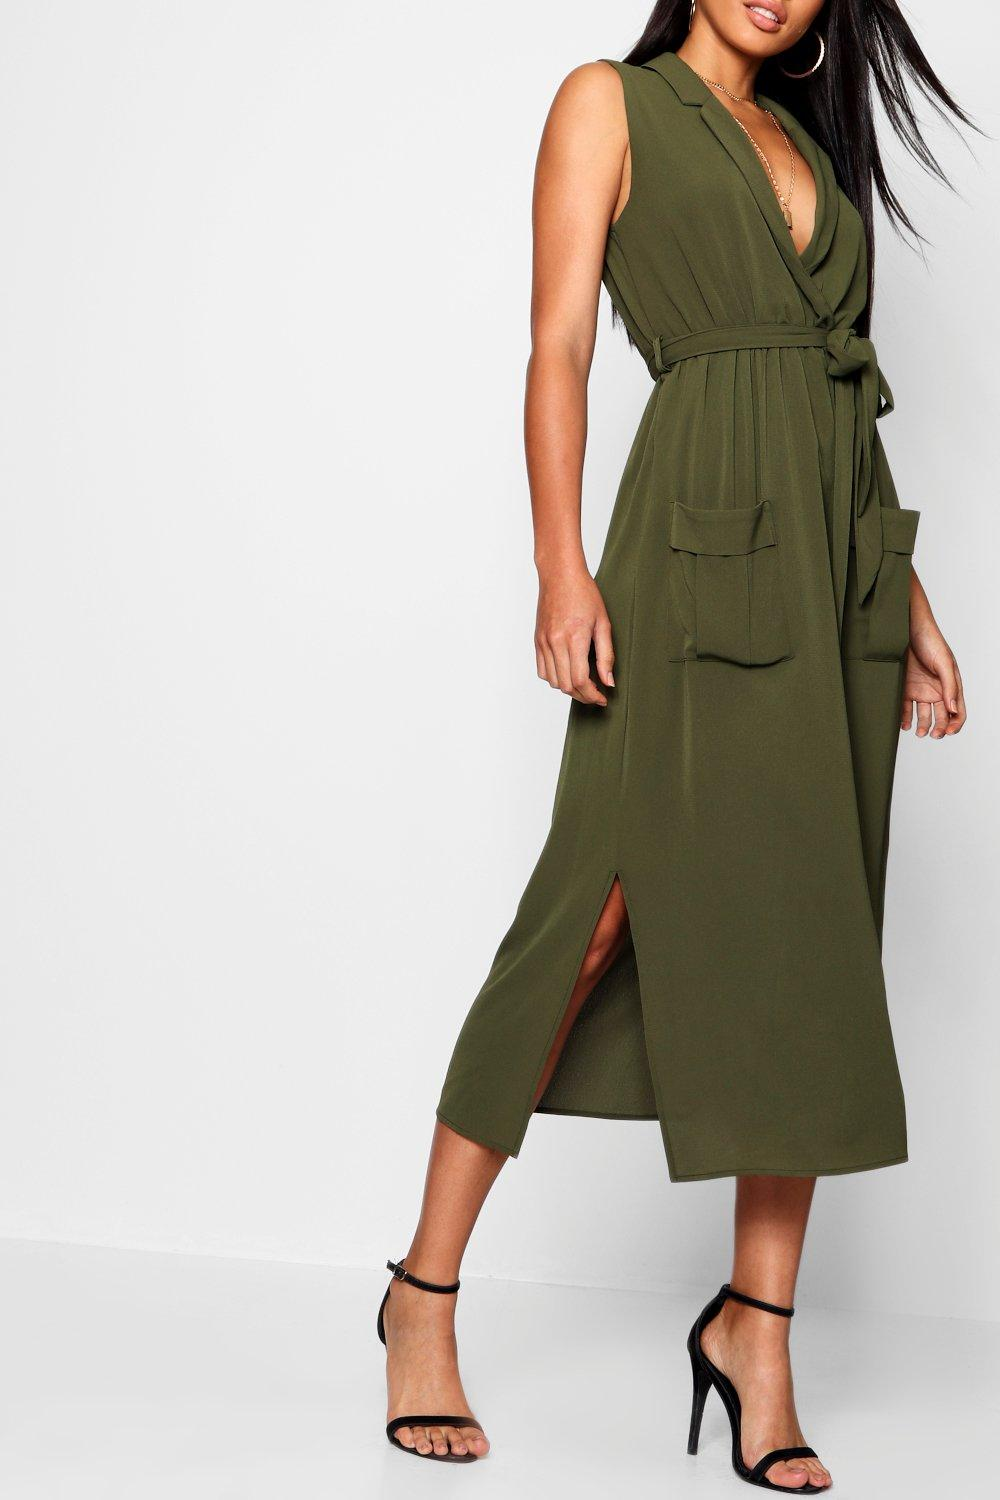 Enjoy free shipping and easy returns every day at Kohl's. Find great deals on Womens Sleeveless Dresses at Kohl's today!